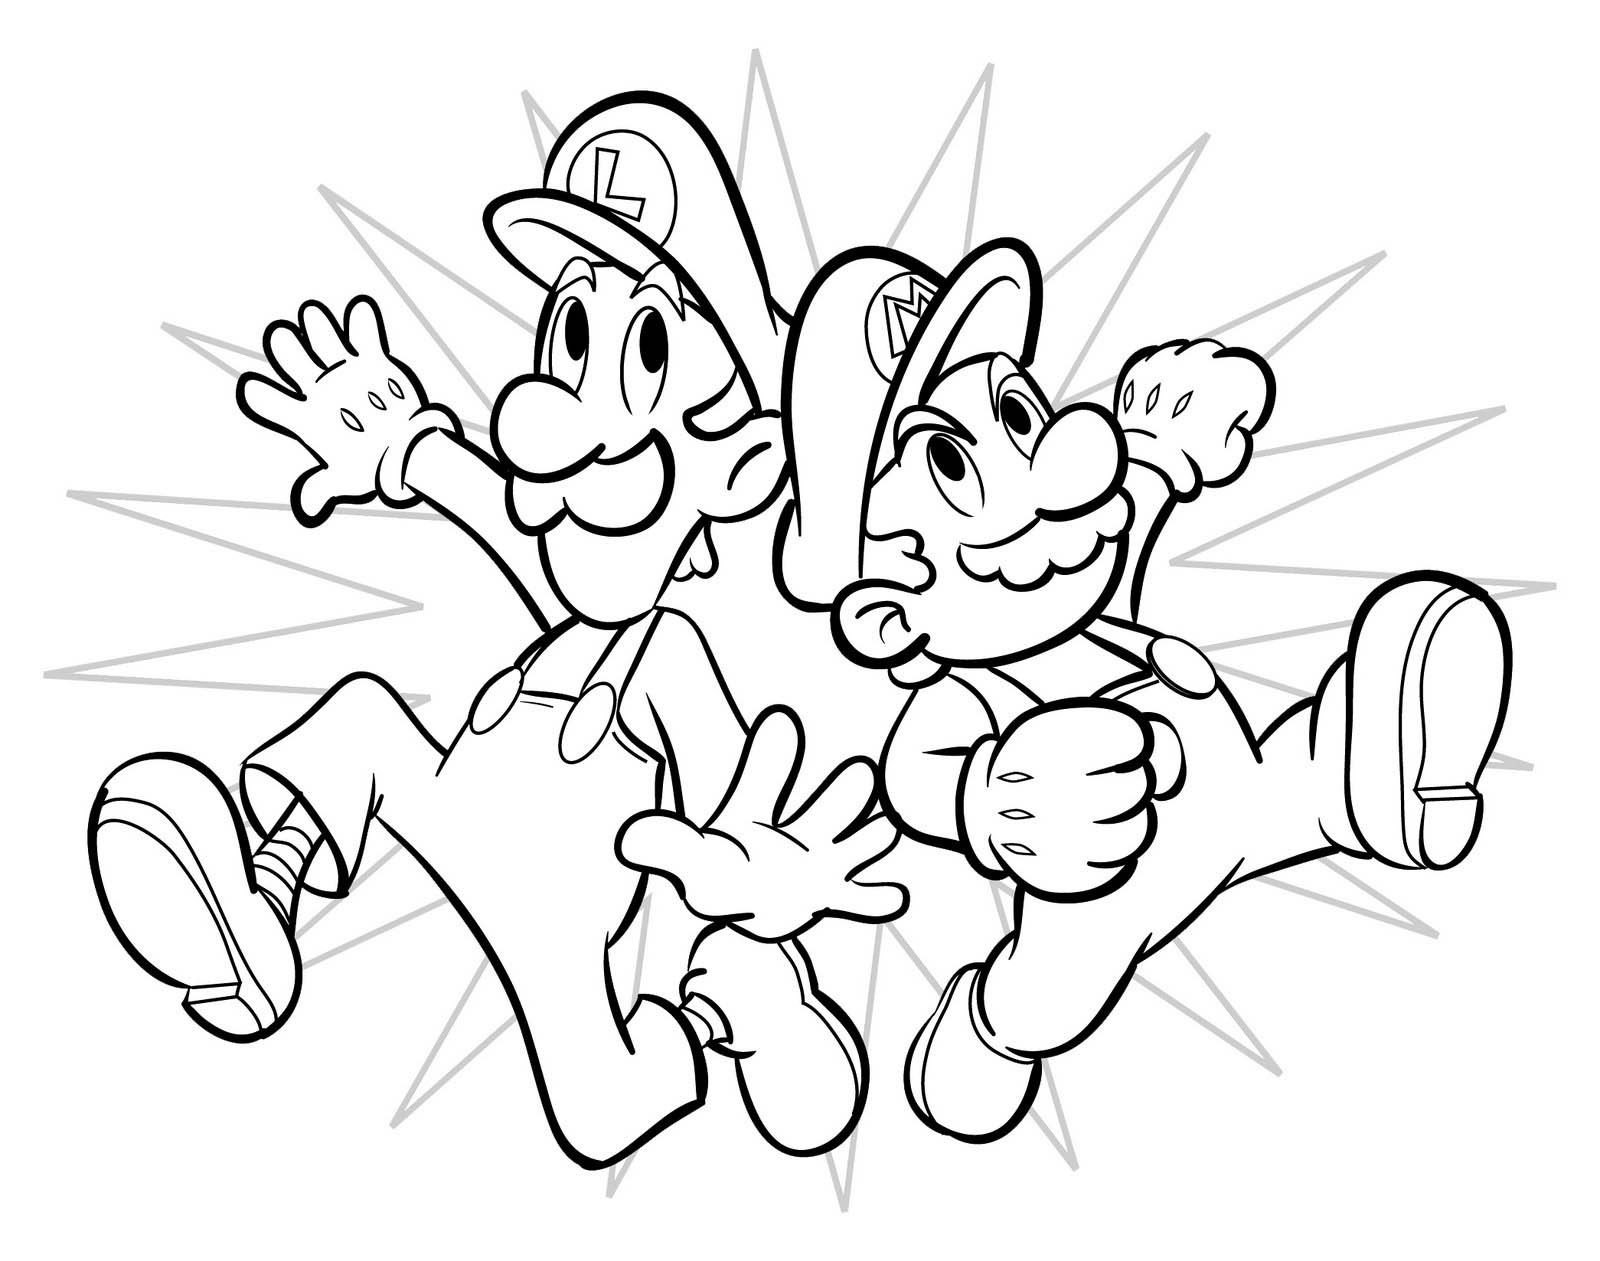 mario coloring pages to print - Coloring Printouts